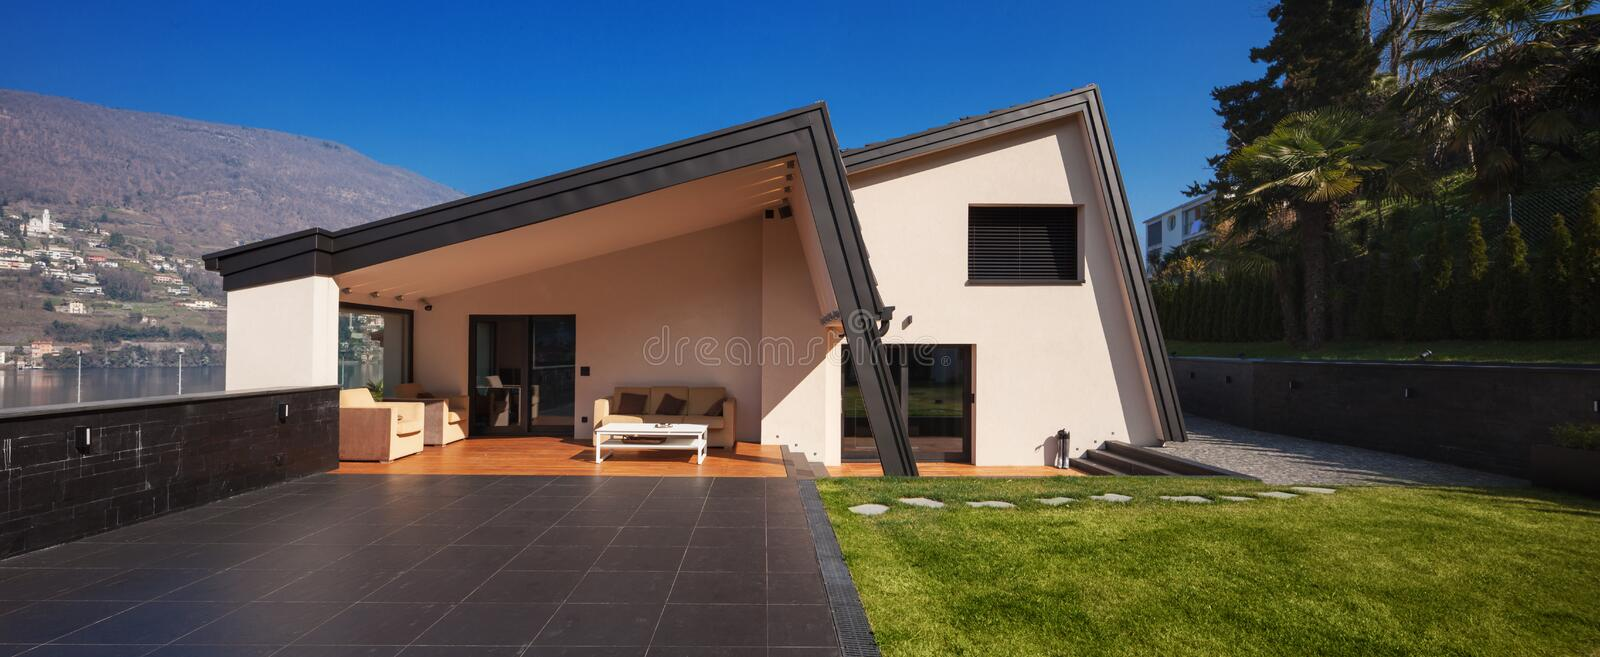 Modern villa, exterior with lawn, nobody royalty free stock photography